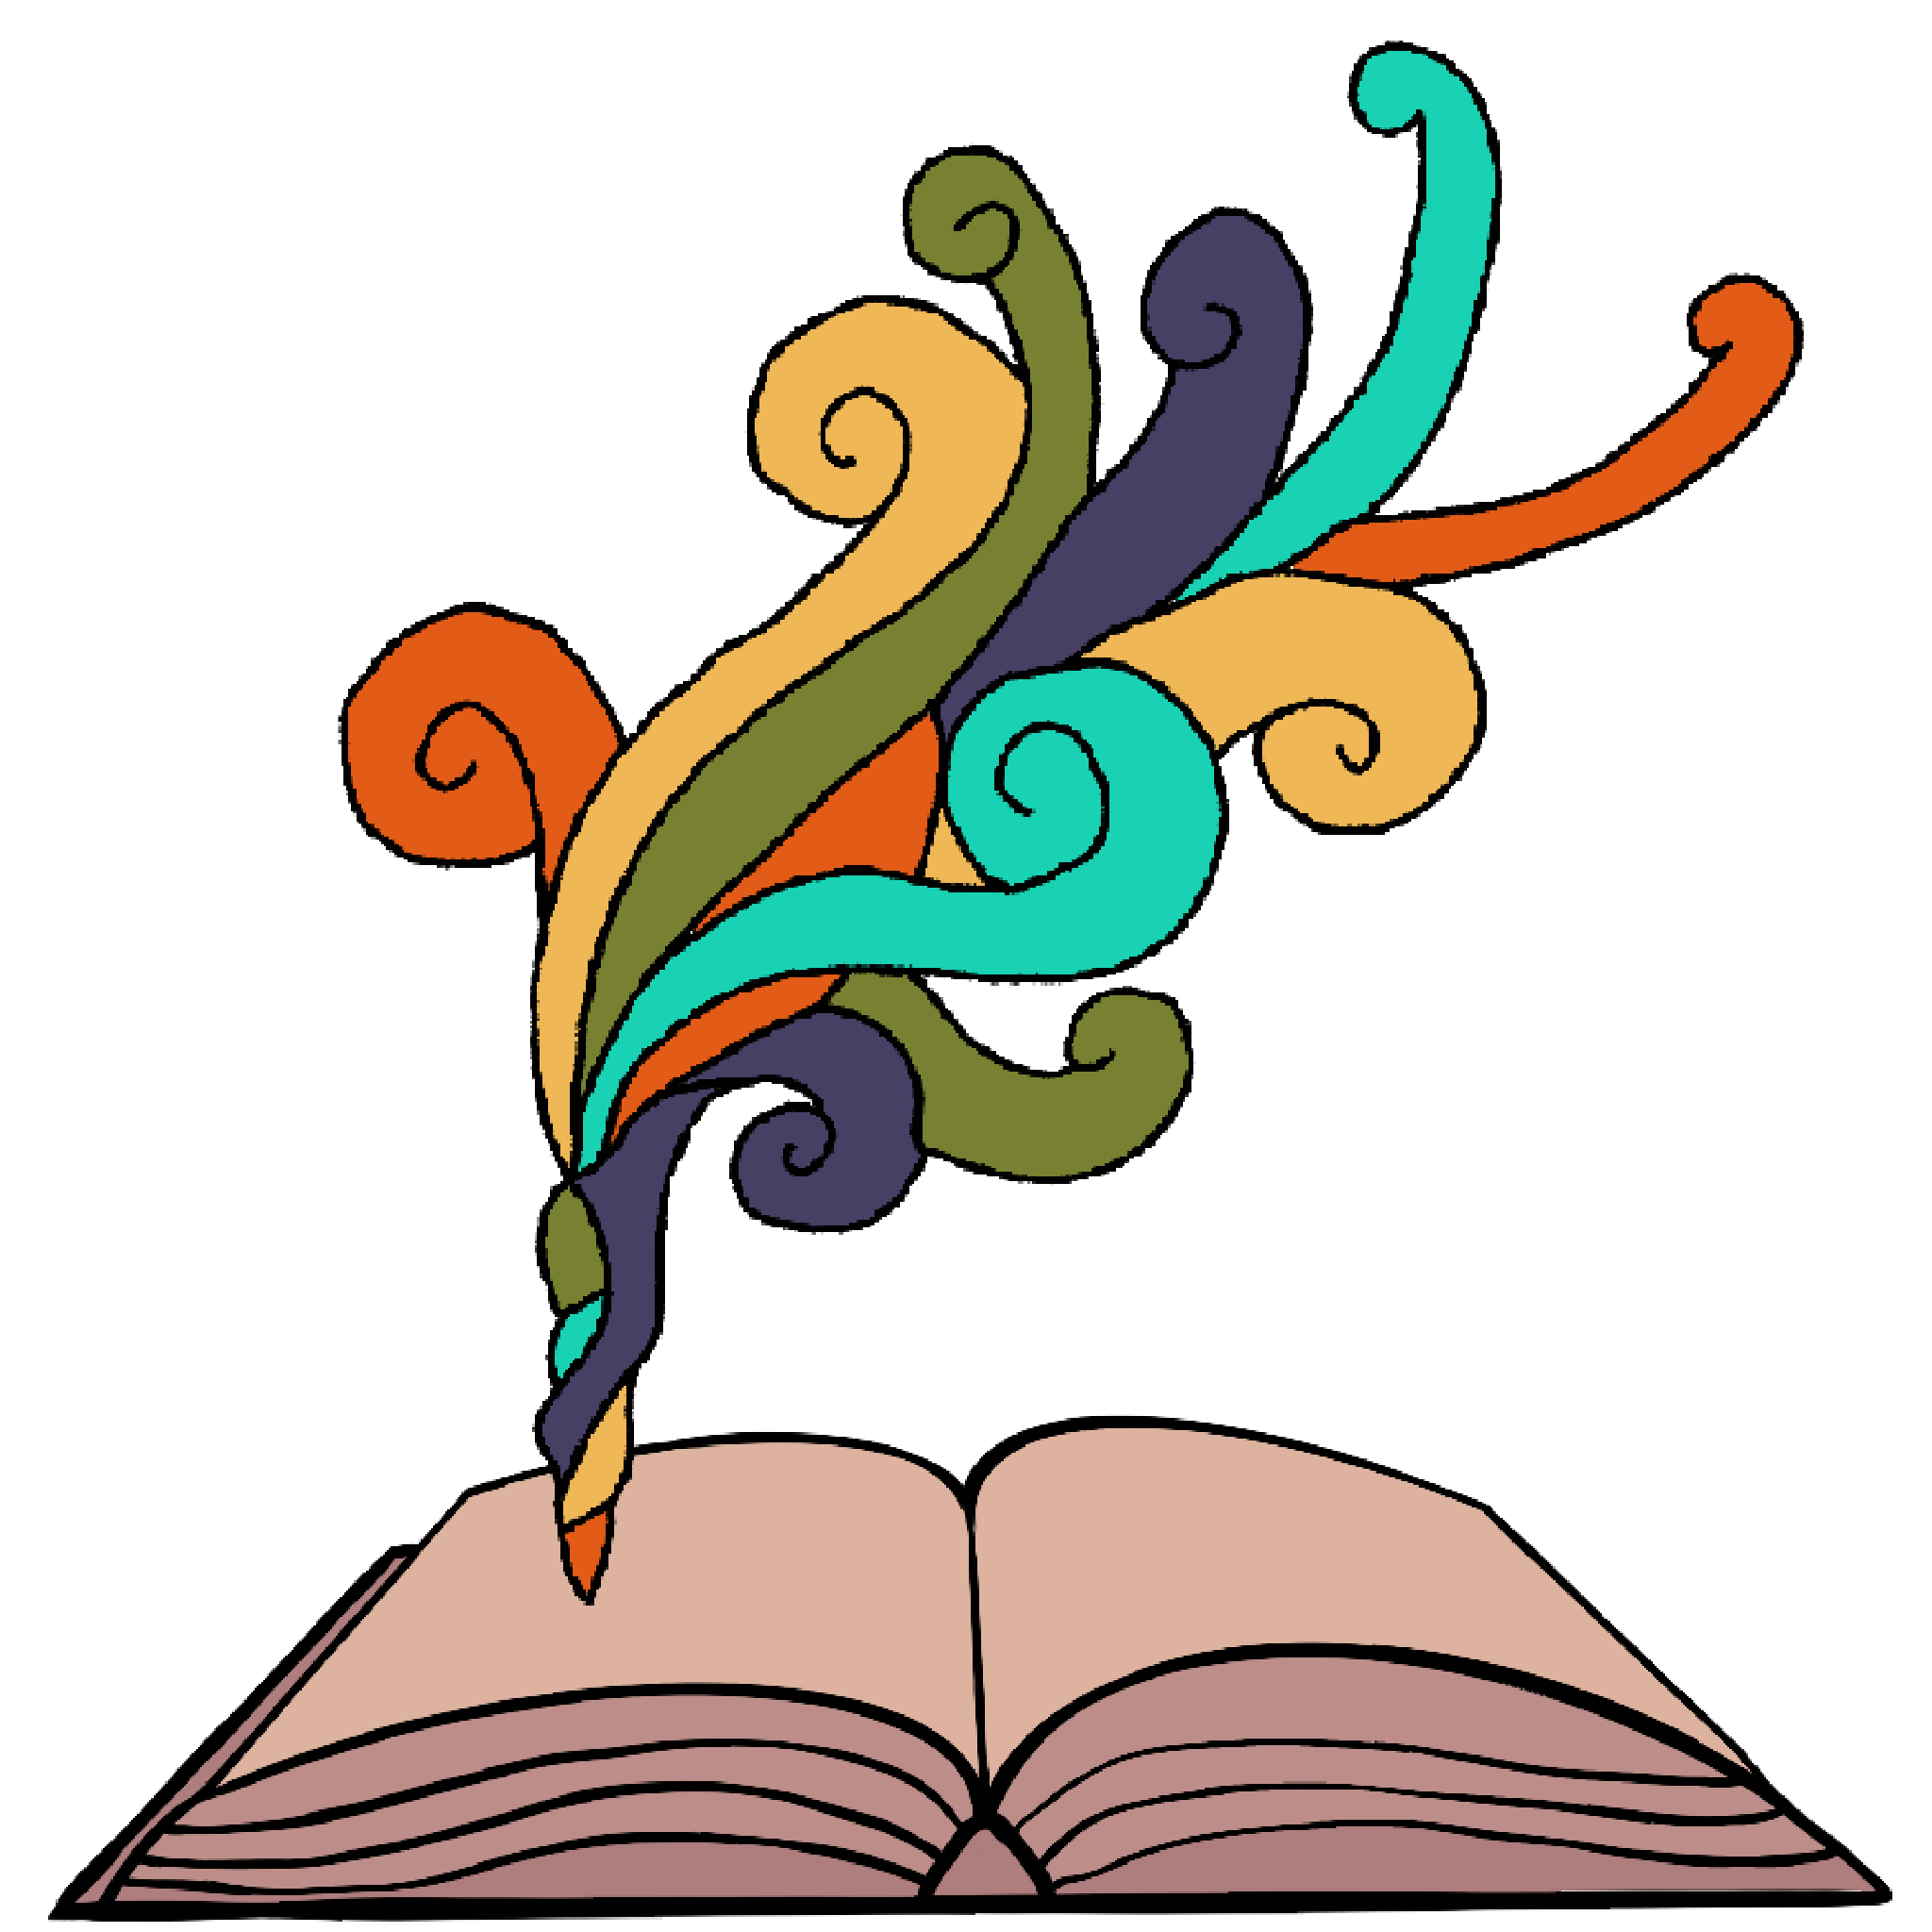 A color illustration of an open book with a muted rainbow of swirls coming out of a page.